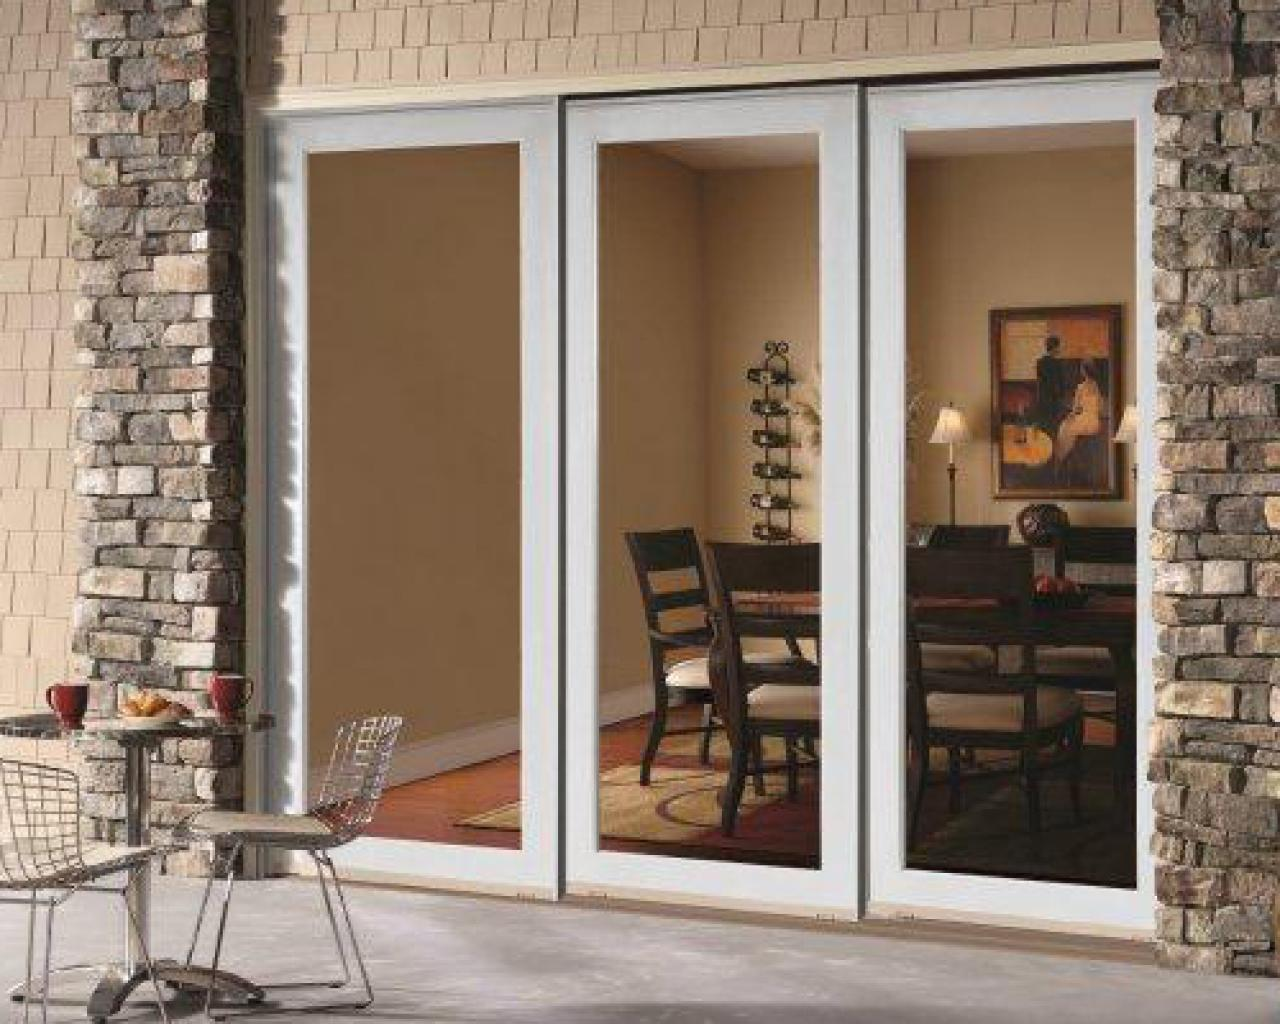 1024 #956236 Commercial Sliding Door Systems Aluminum Exterior 990 Pocket Doors  save image Andersen Commercial Doors 45371280